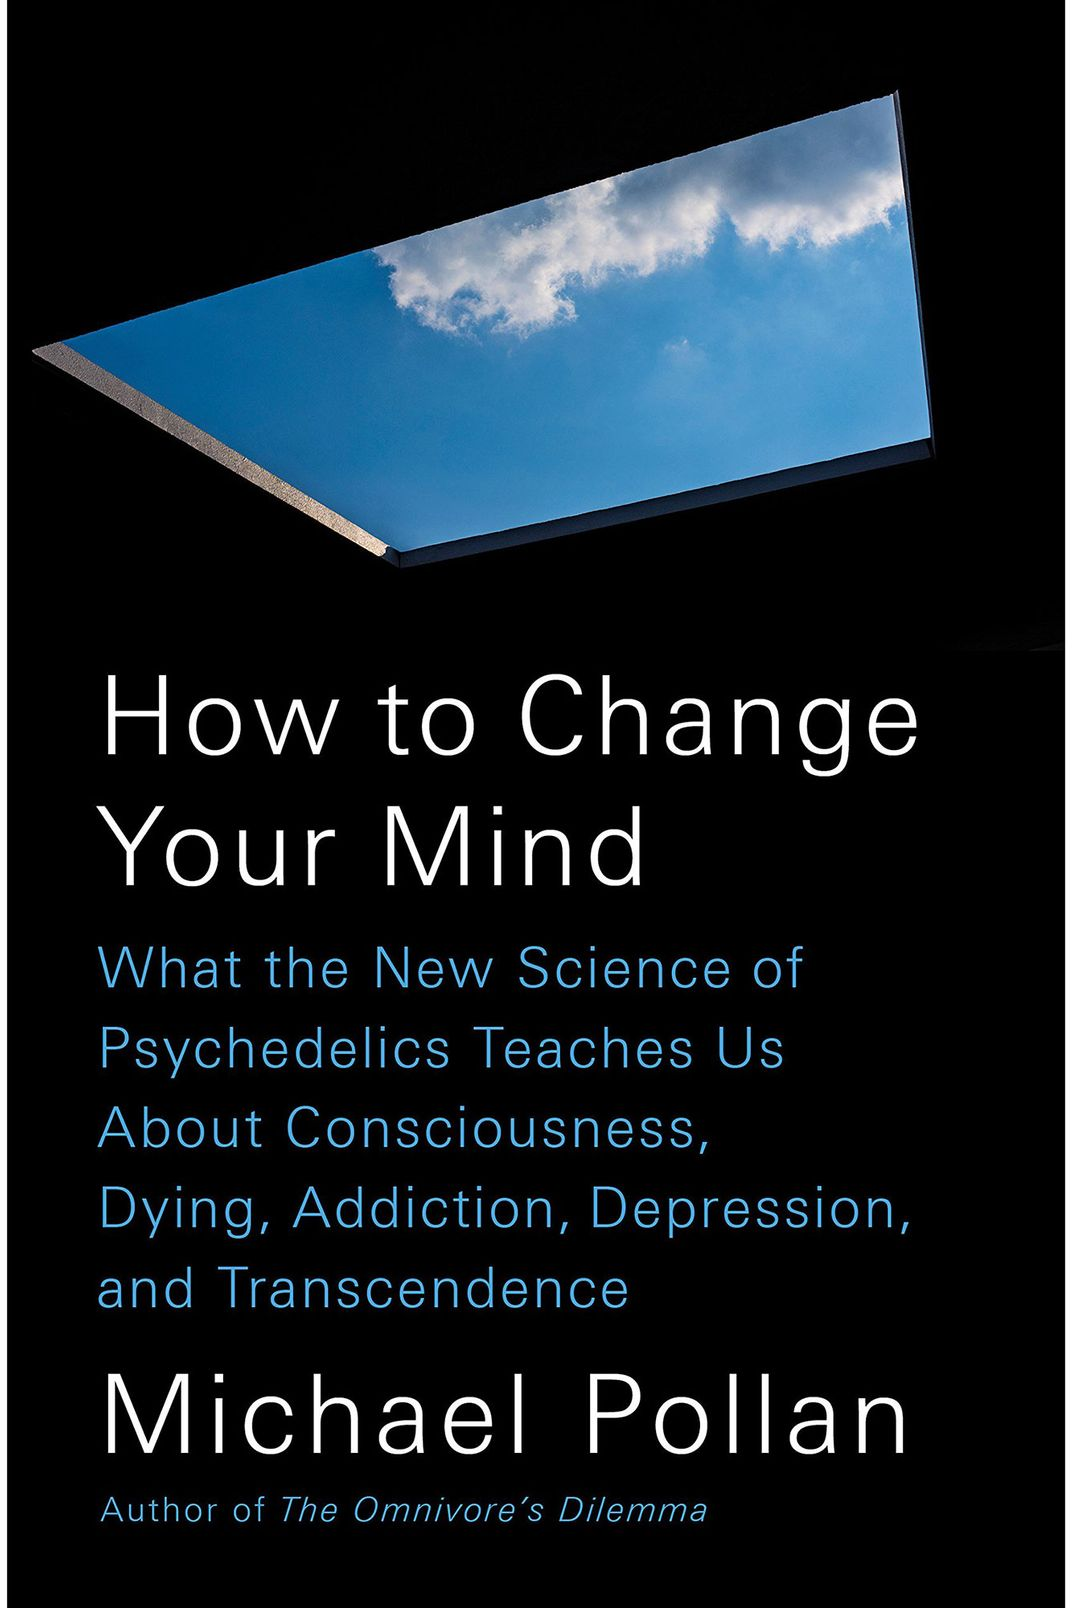 How to Change Your Mind, by Michael Pollan